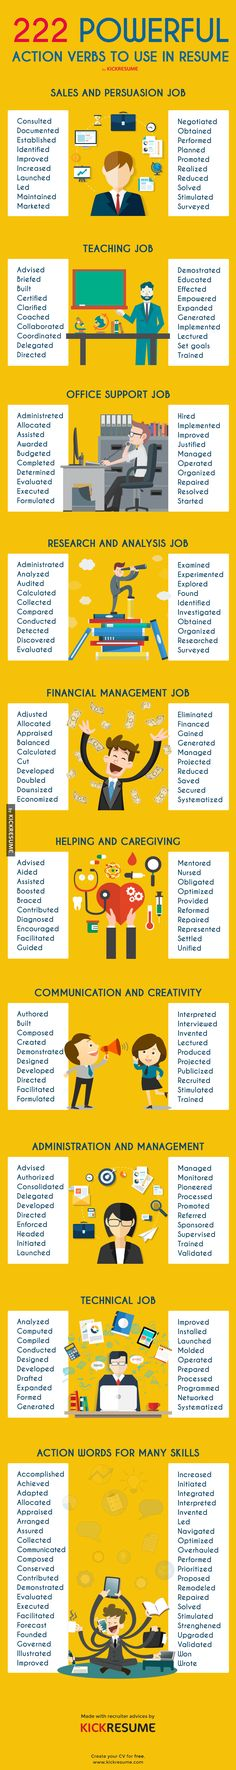 200+ Powerful Action Verbs Perfect for Your Resume [Infographic] | The Savvy Intern by YouTern